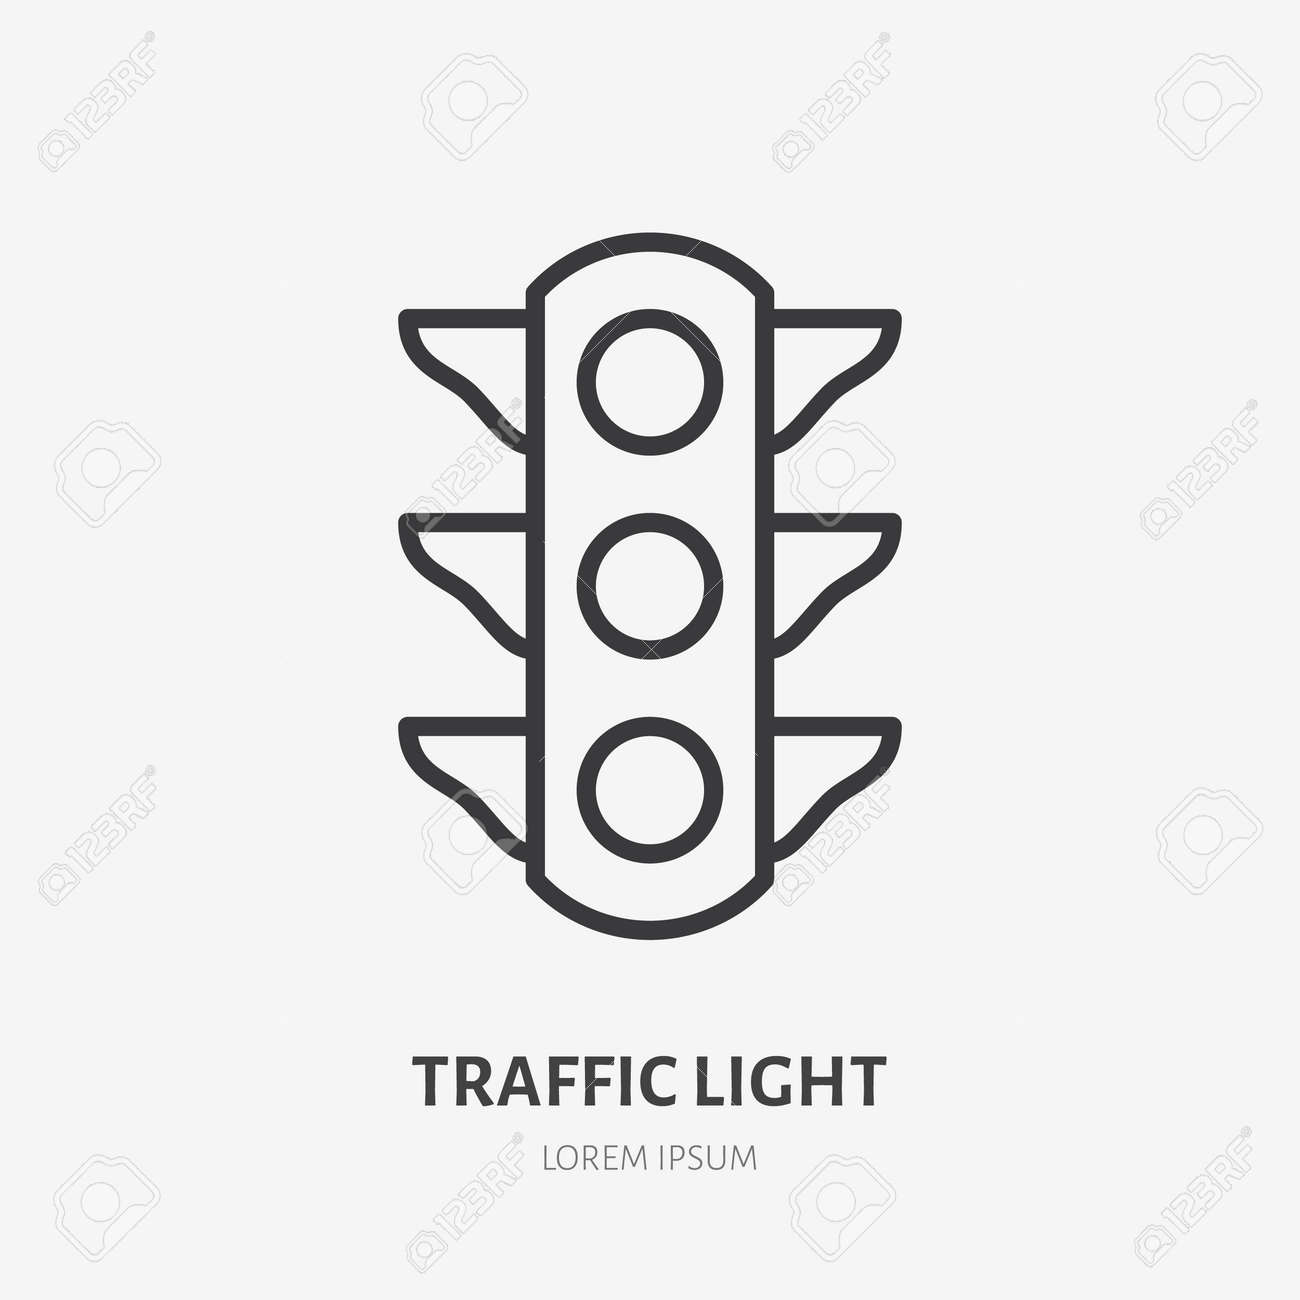 Traffic light flat line icon. Vector outline illustration of simple traficlight. Black color thin linear sign for stoplight traficlamp. - 162491643